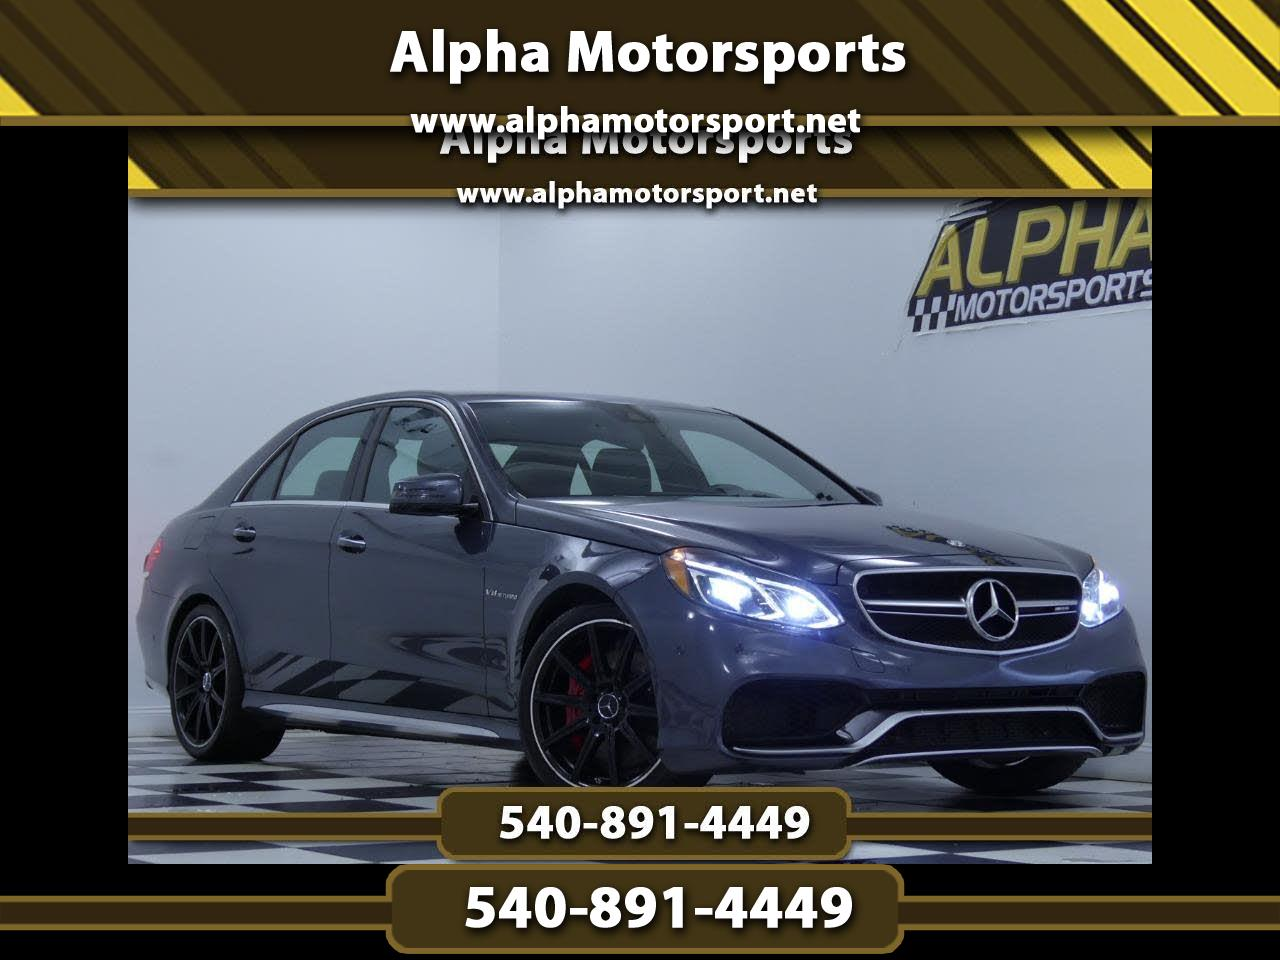 2015 Mercedes-Benz E Class E 63 AMG S-Model 4MATIC Sedan